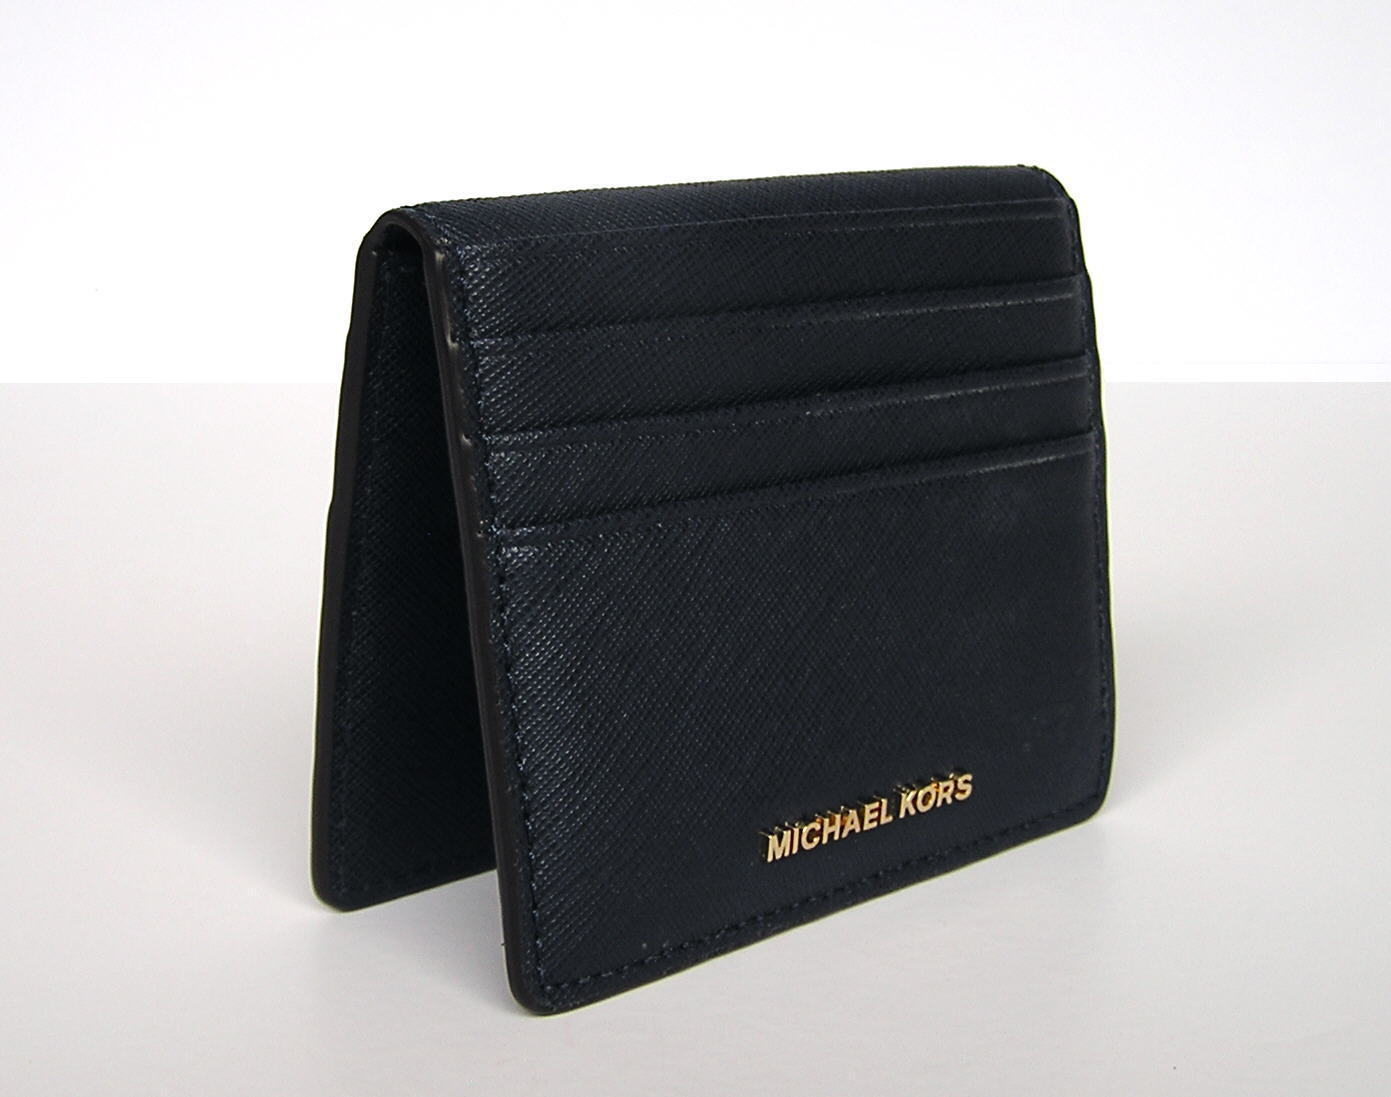 4793f86cad1b Michael Kors Jet Set Travel Leather Card and 50 similar items